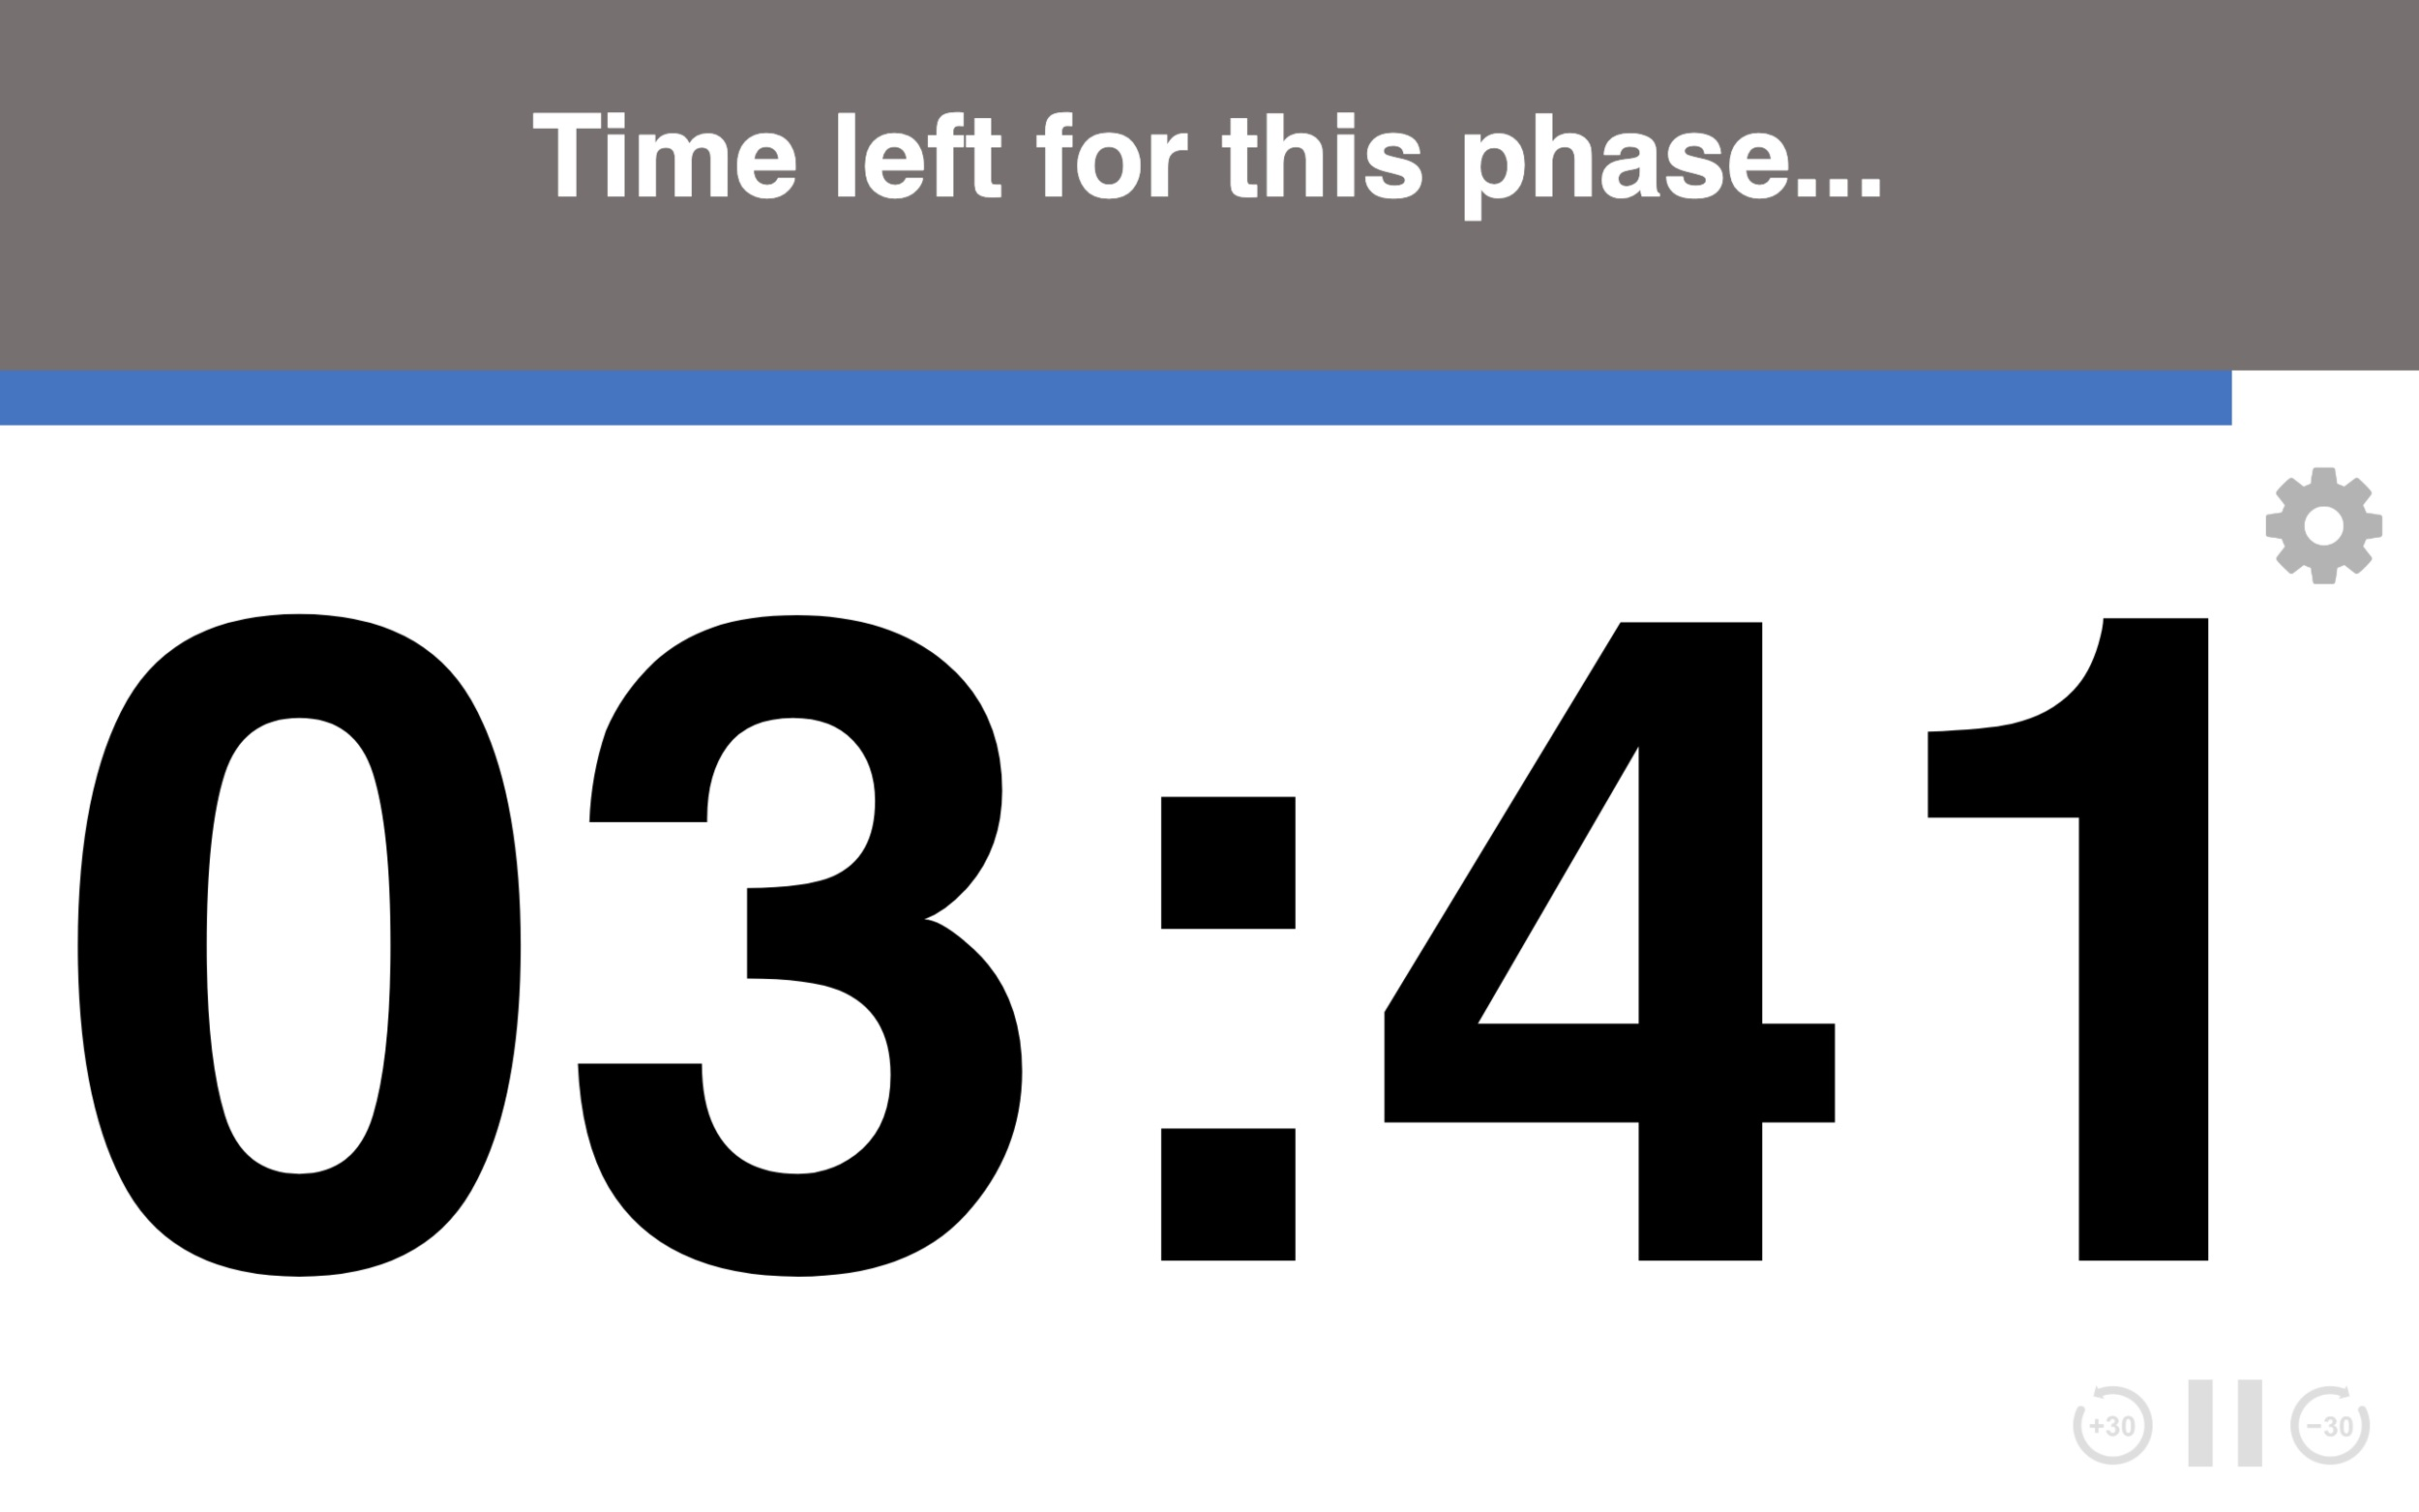 Need a countdown timer? - Our developer Johannes made this useful countdown timer for anyone who needs a countdown timer for presentation management, for a competition, or other task. Try it out and let us know if you like it!